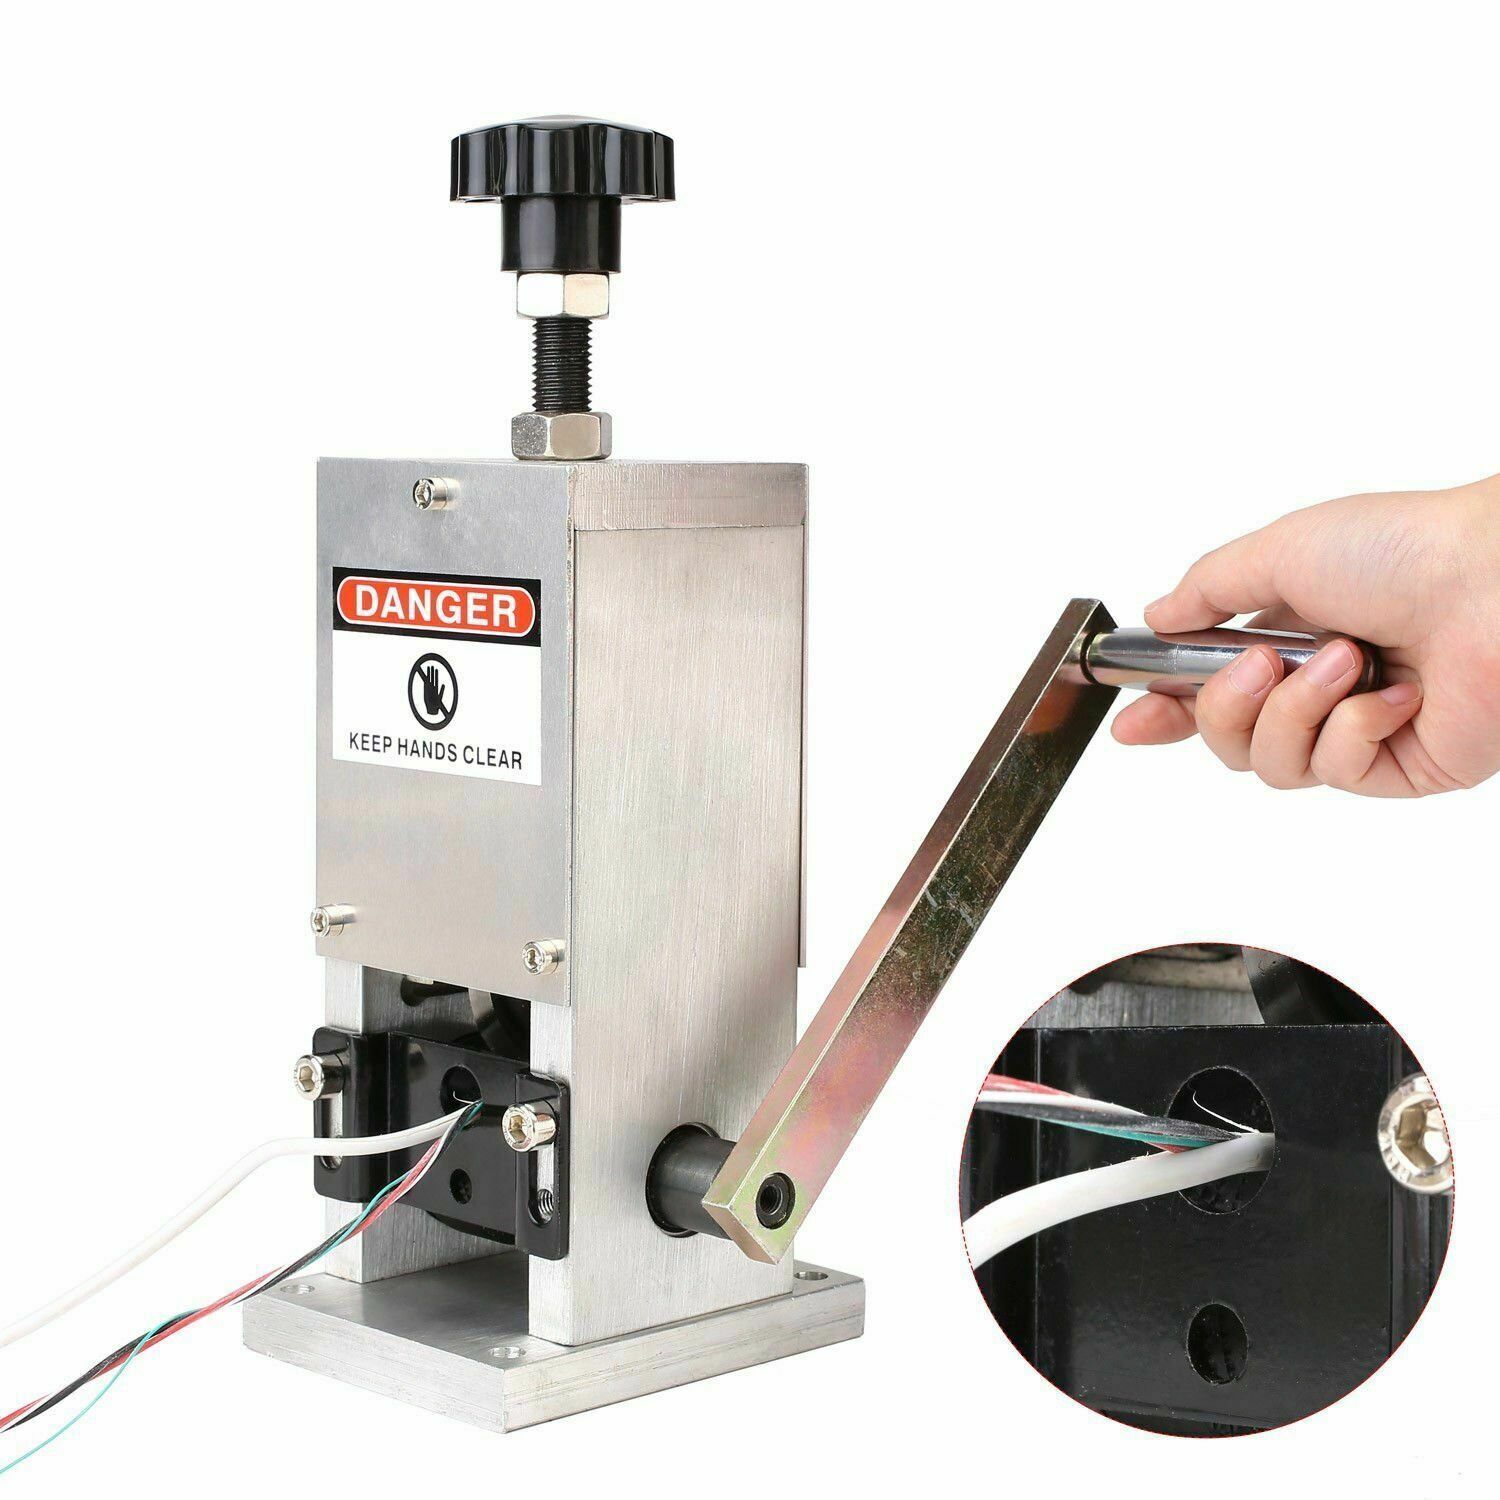 2Pgft details about durable copper wire stripping machine hand crank drill  operated cable stripper